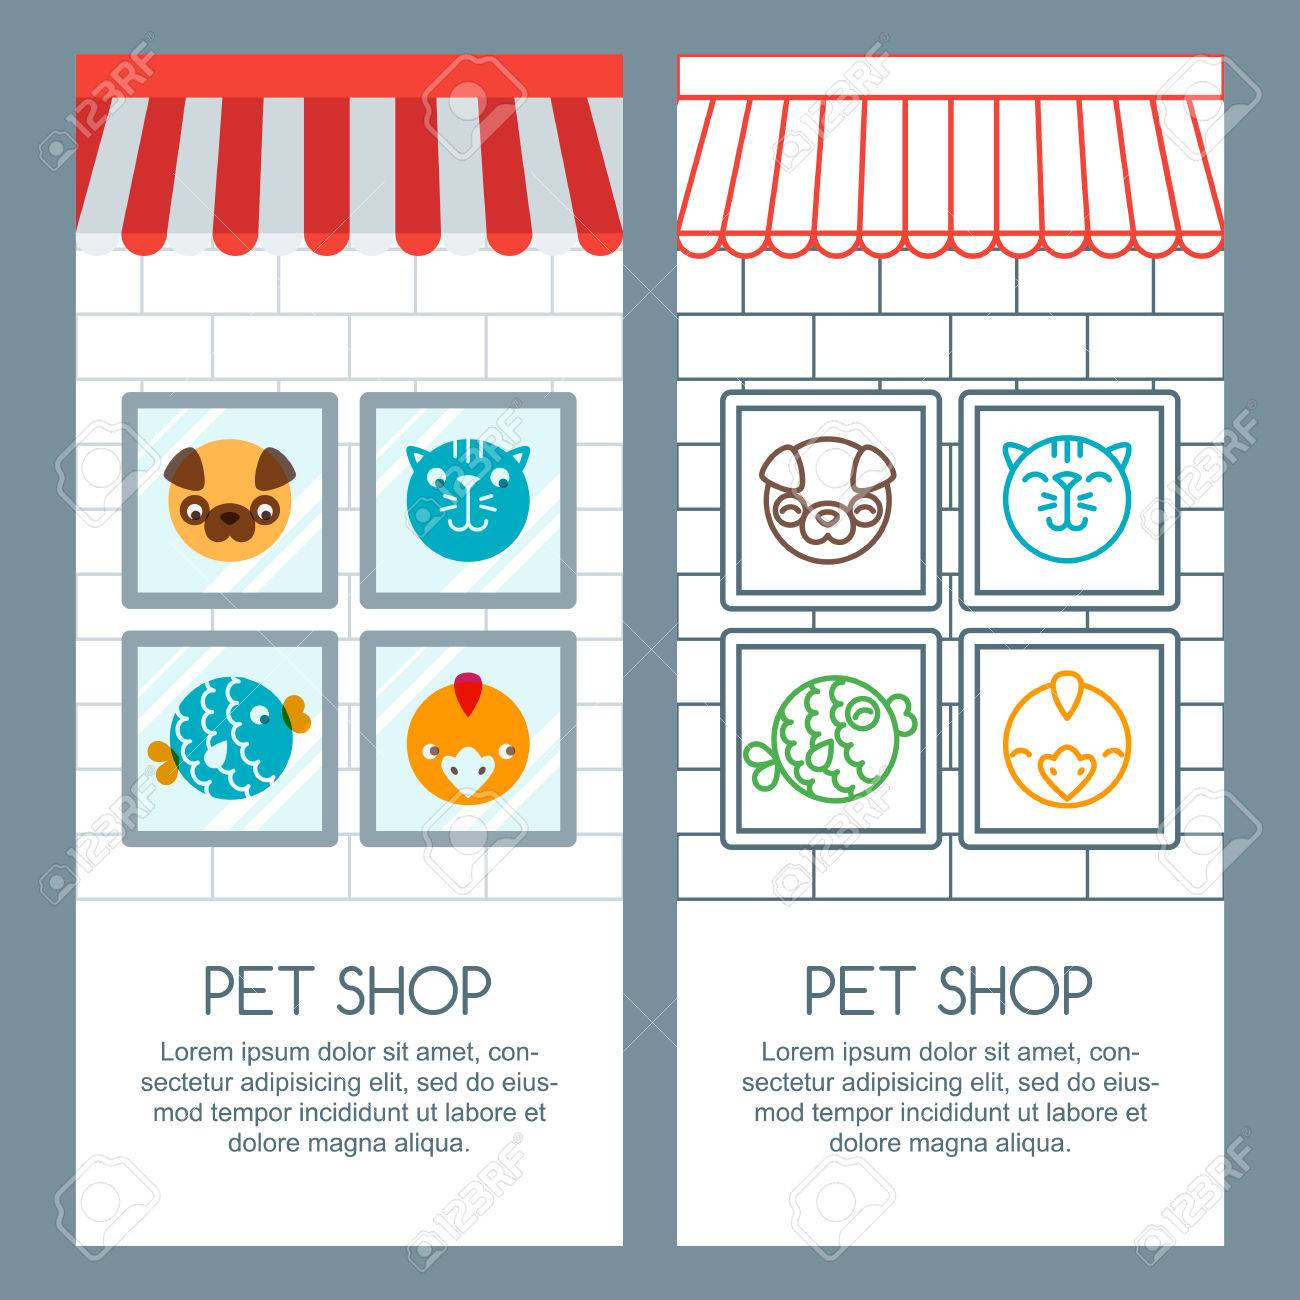 Pet Shop Pets Care Veterinary Concept Vector Banner Poster